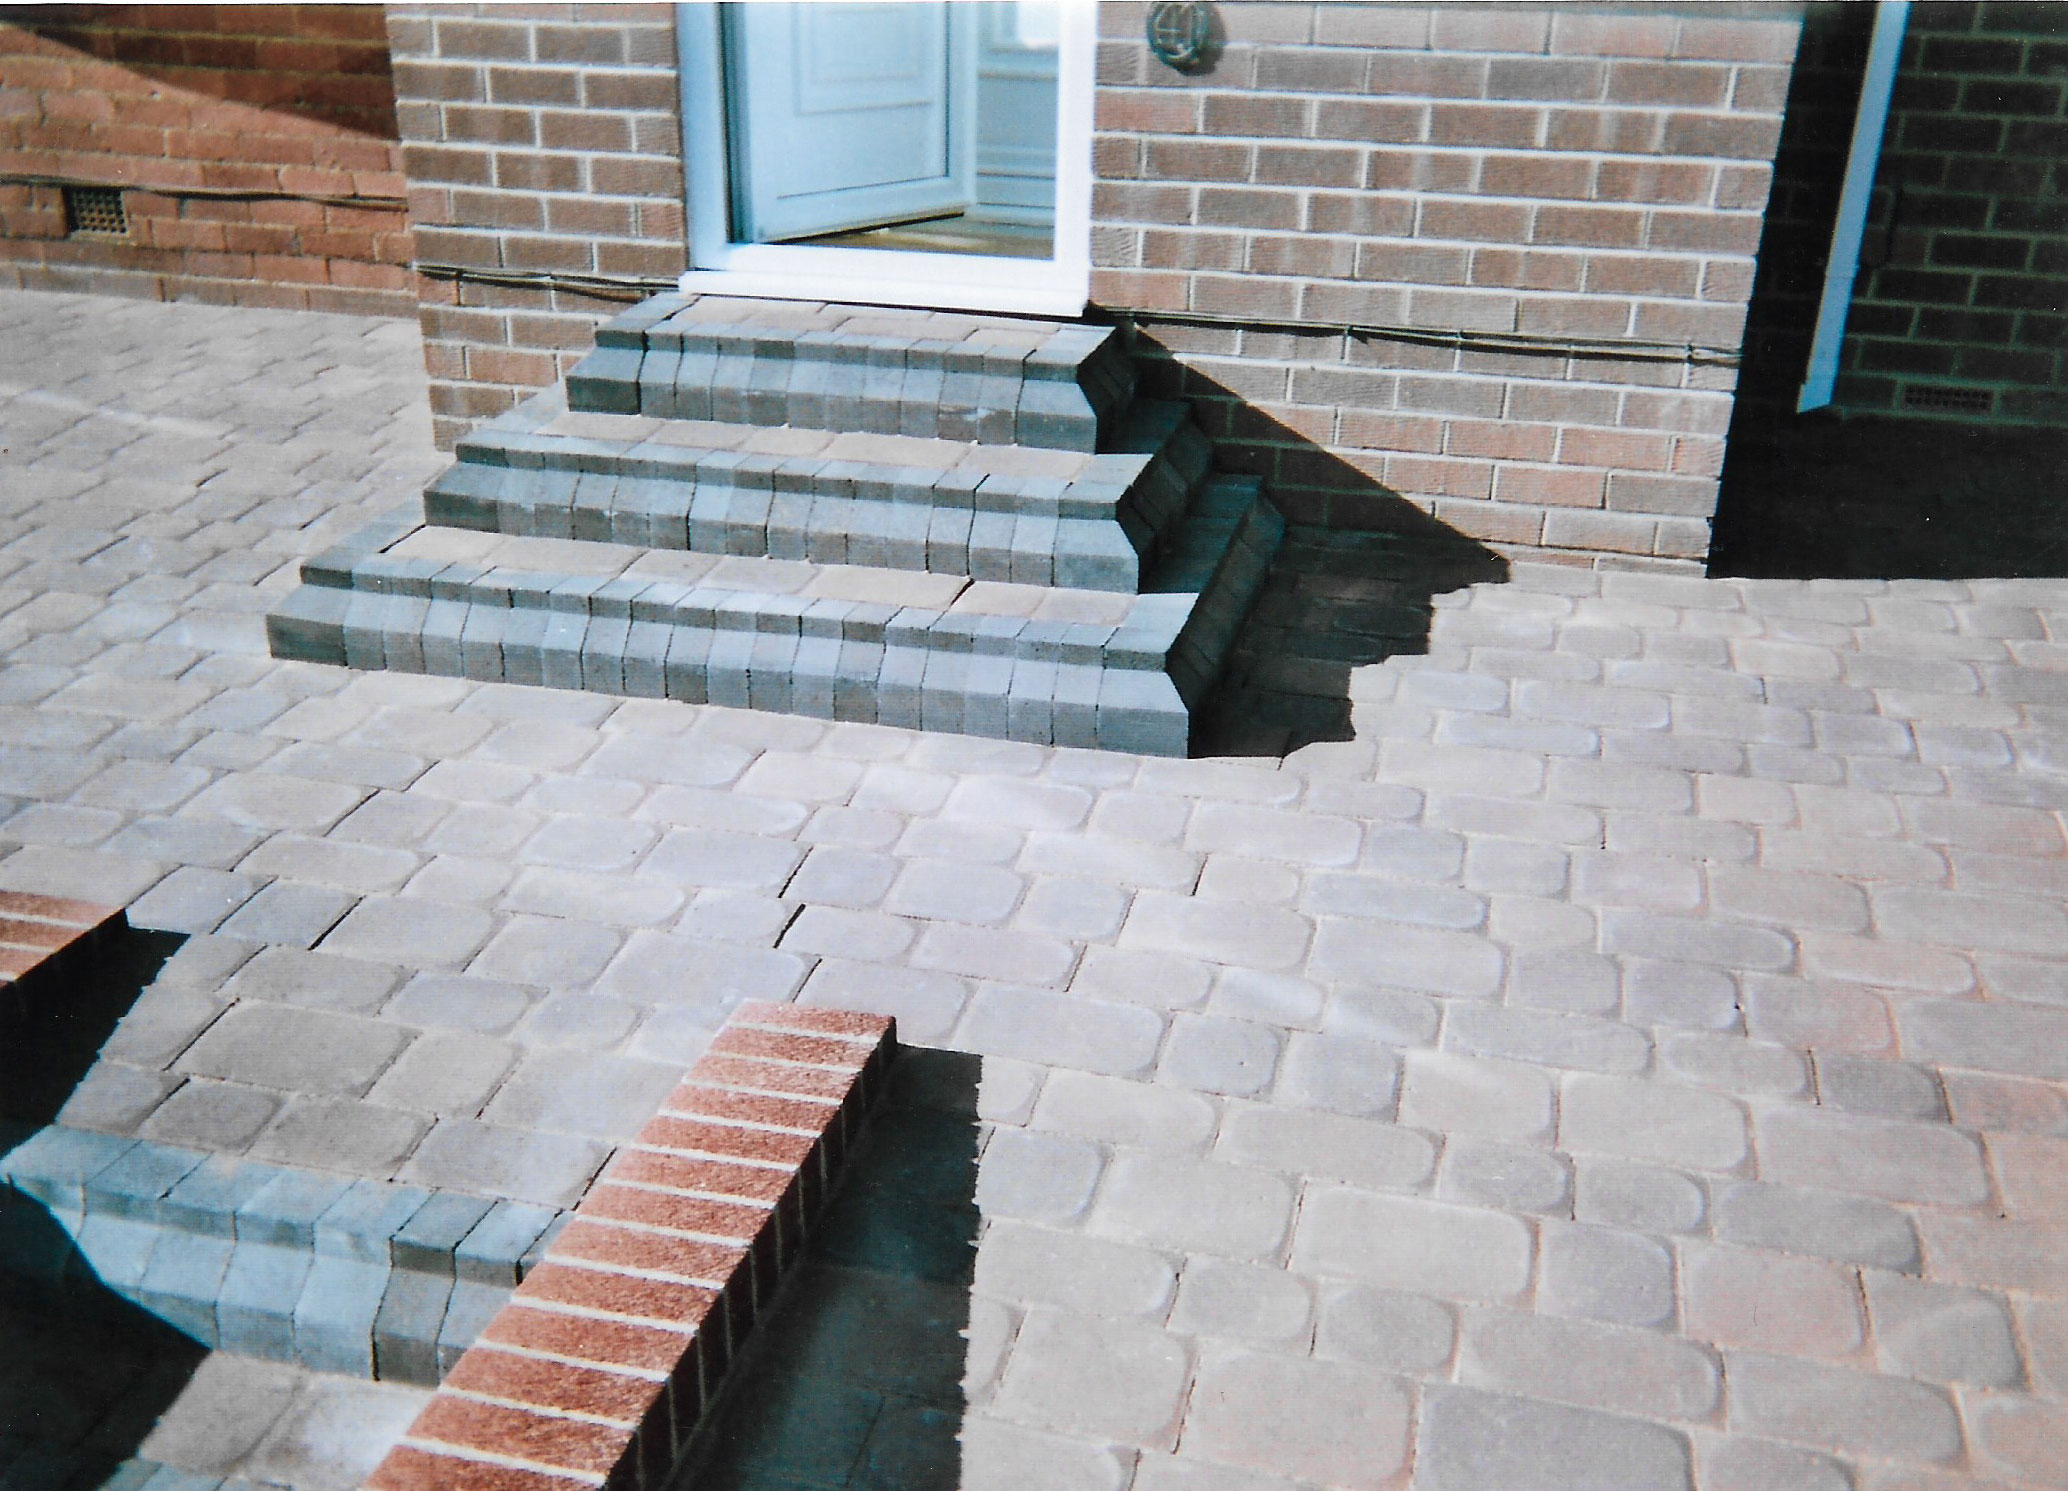 3. Block paving including step